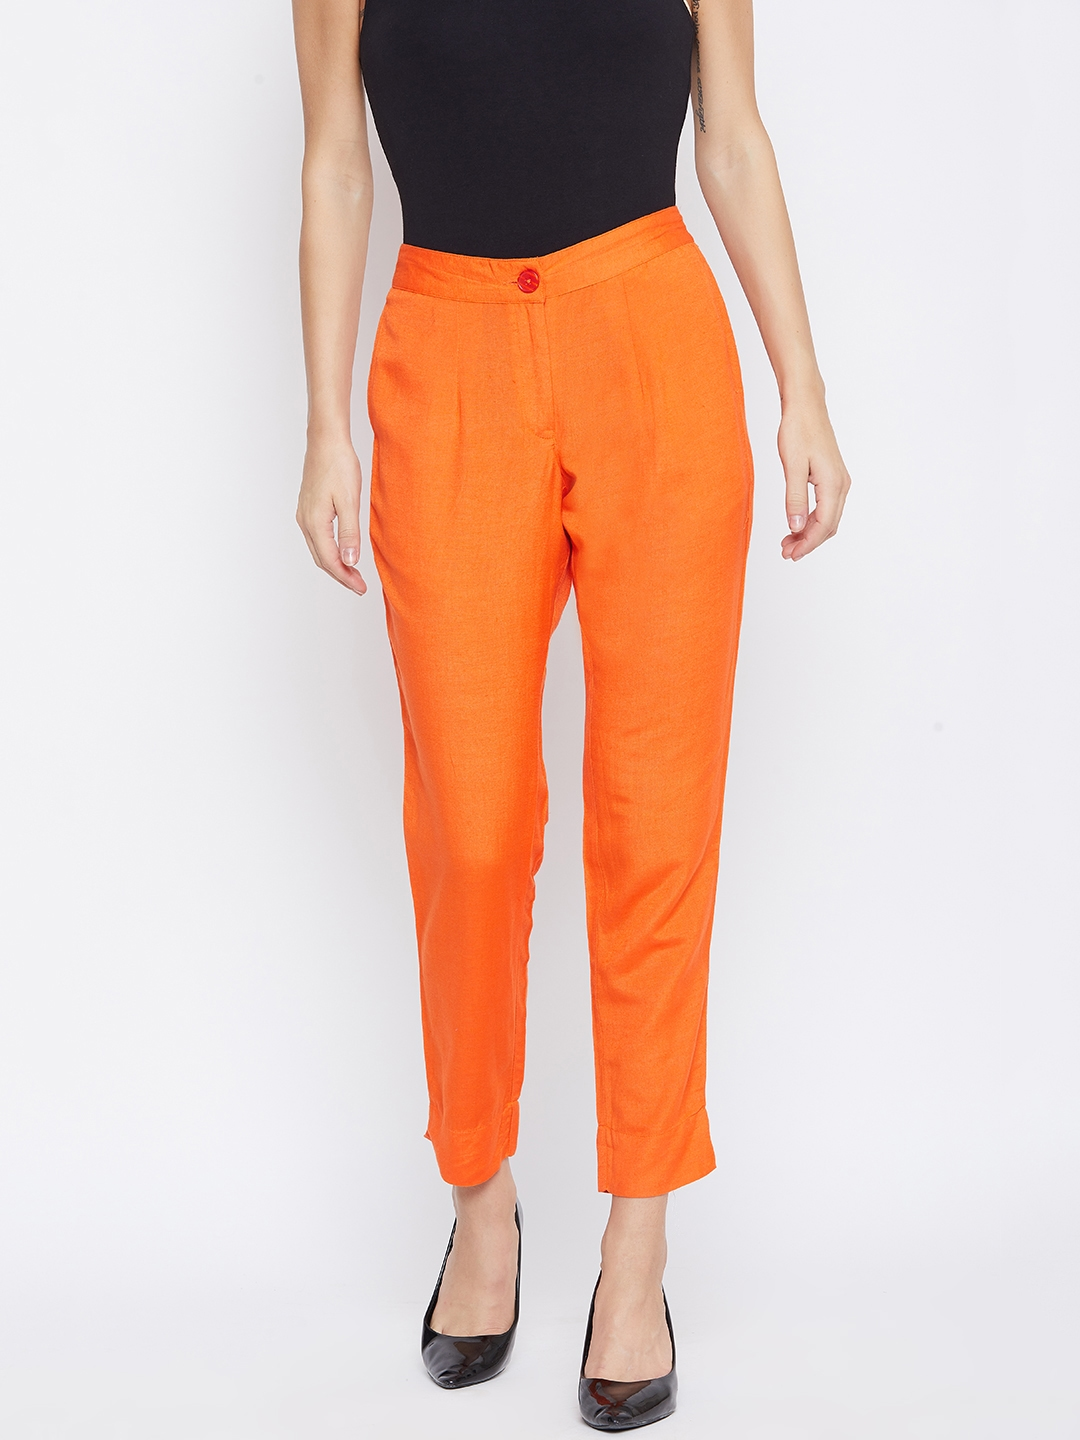 fabGLOBAL Women Orange Relaxed Slim Fit Solid Regular Cropped Trousers